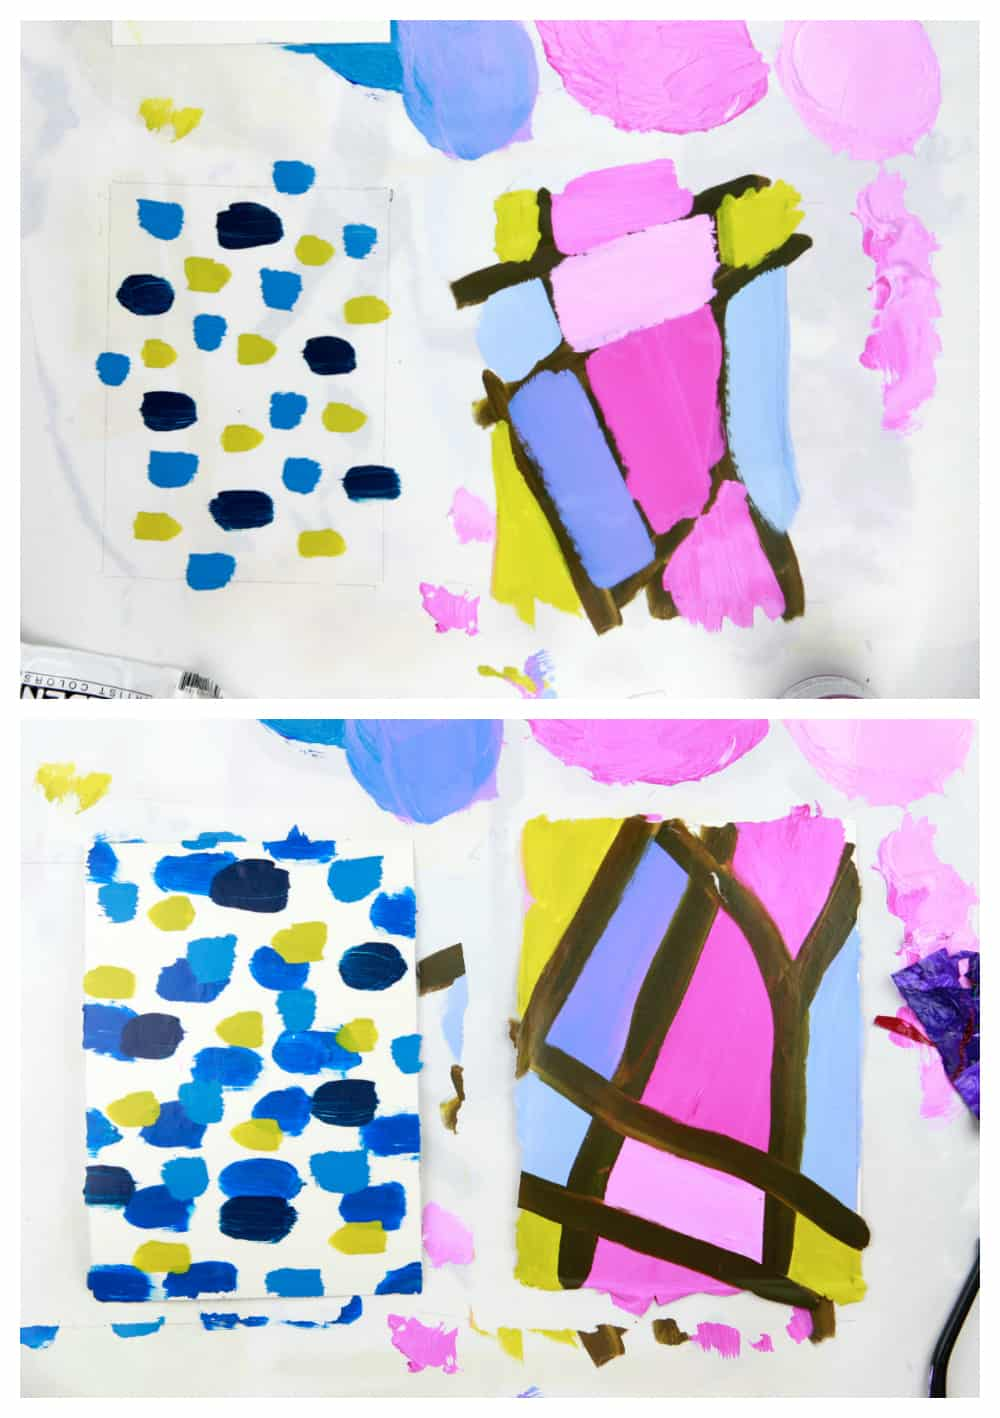 acrylic paint gel transfer steps showing front and back of abstract painted design